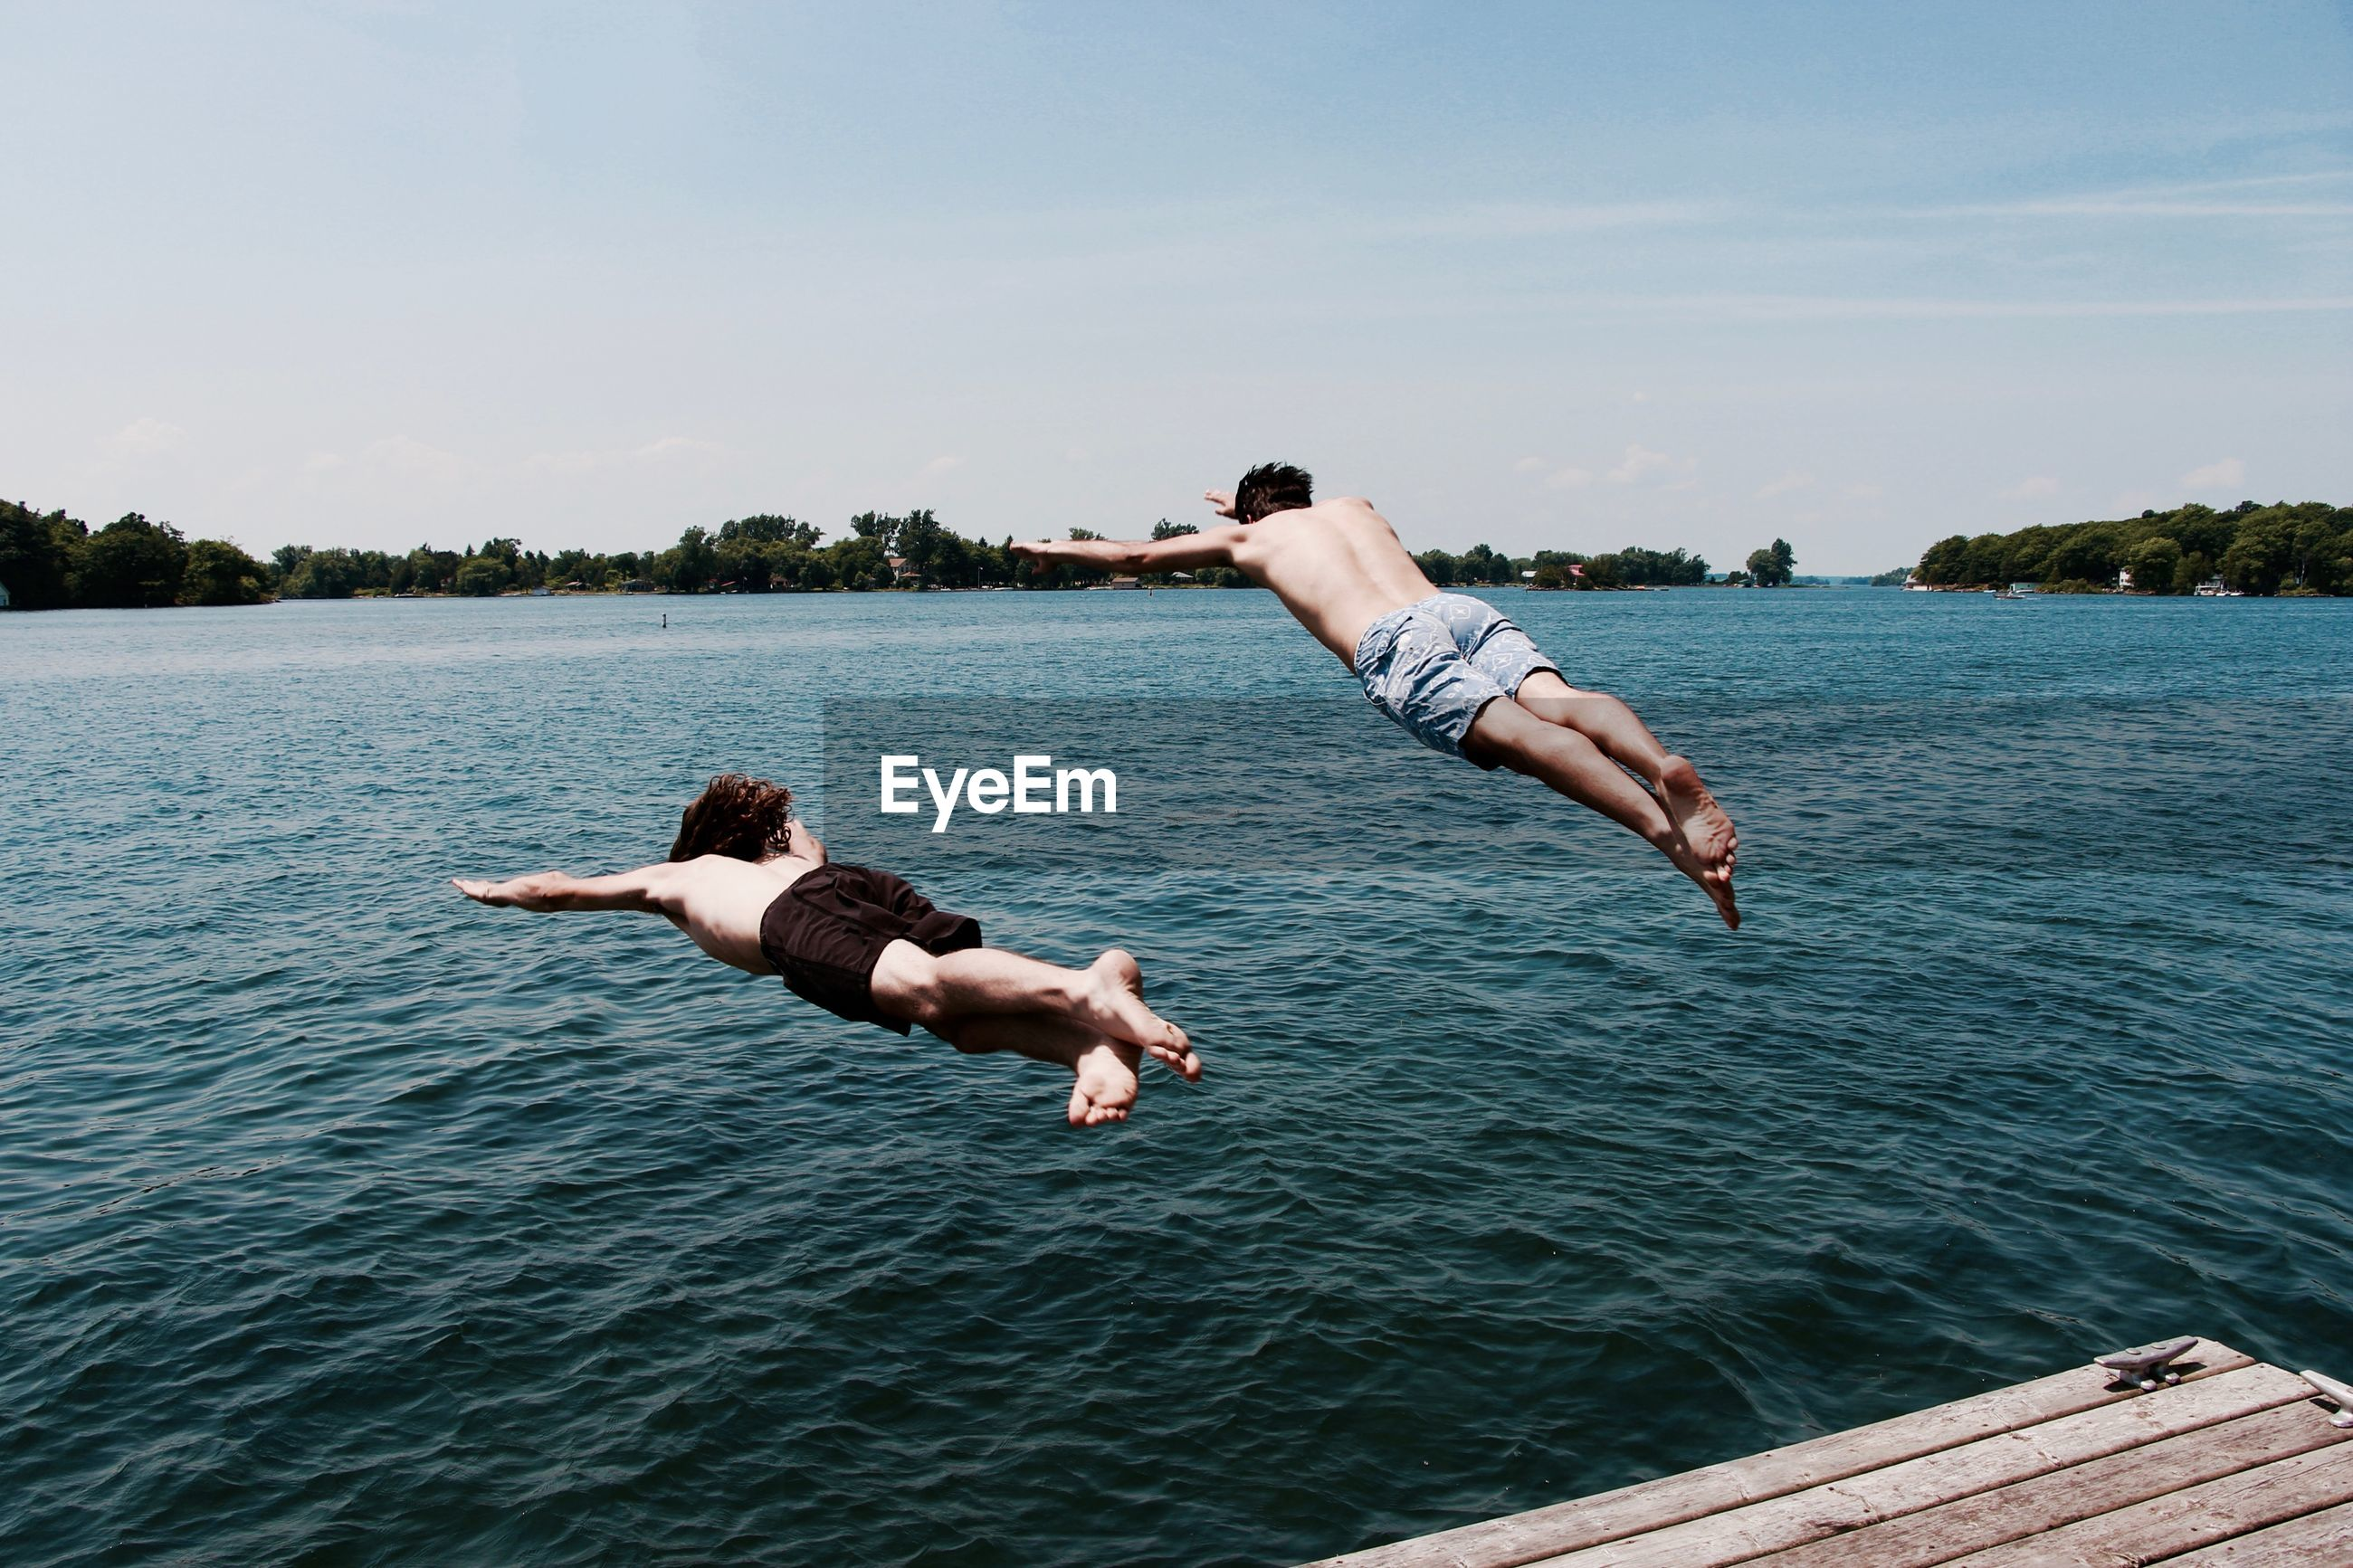 Shirtless friends jumping into river against sky